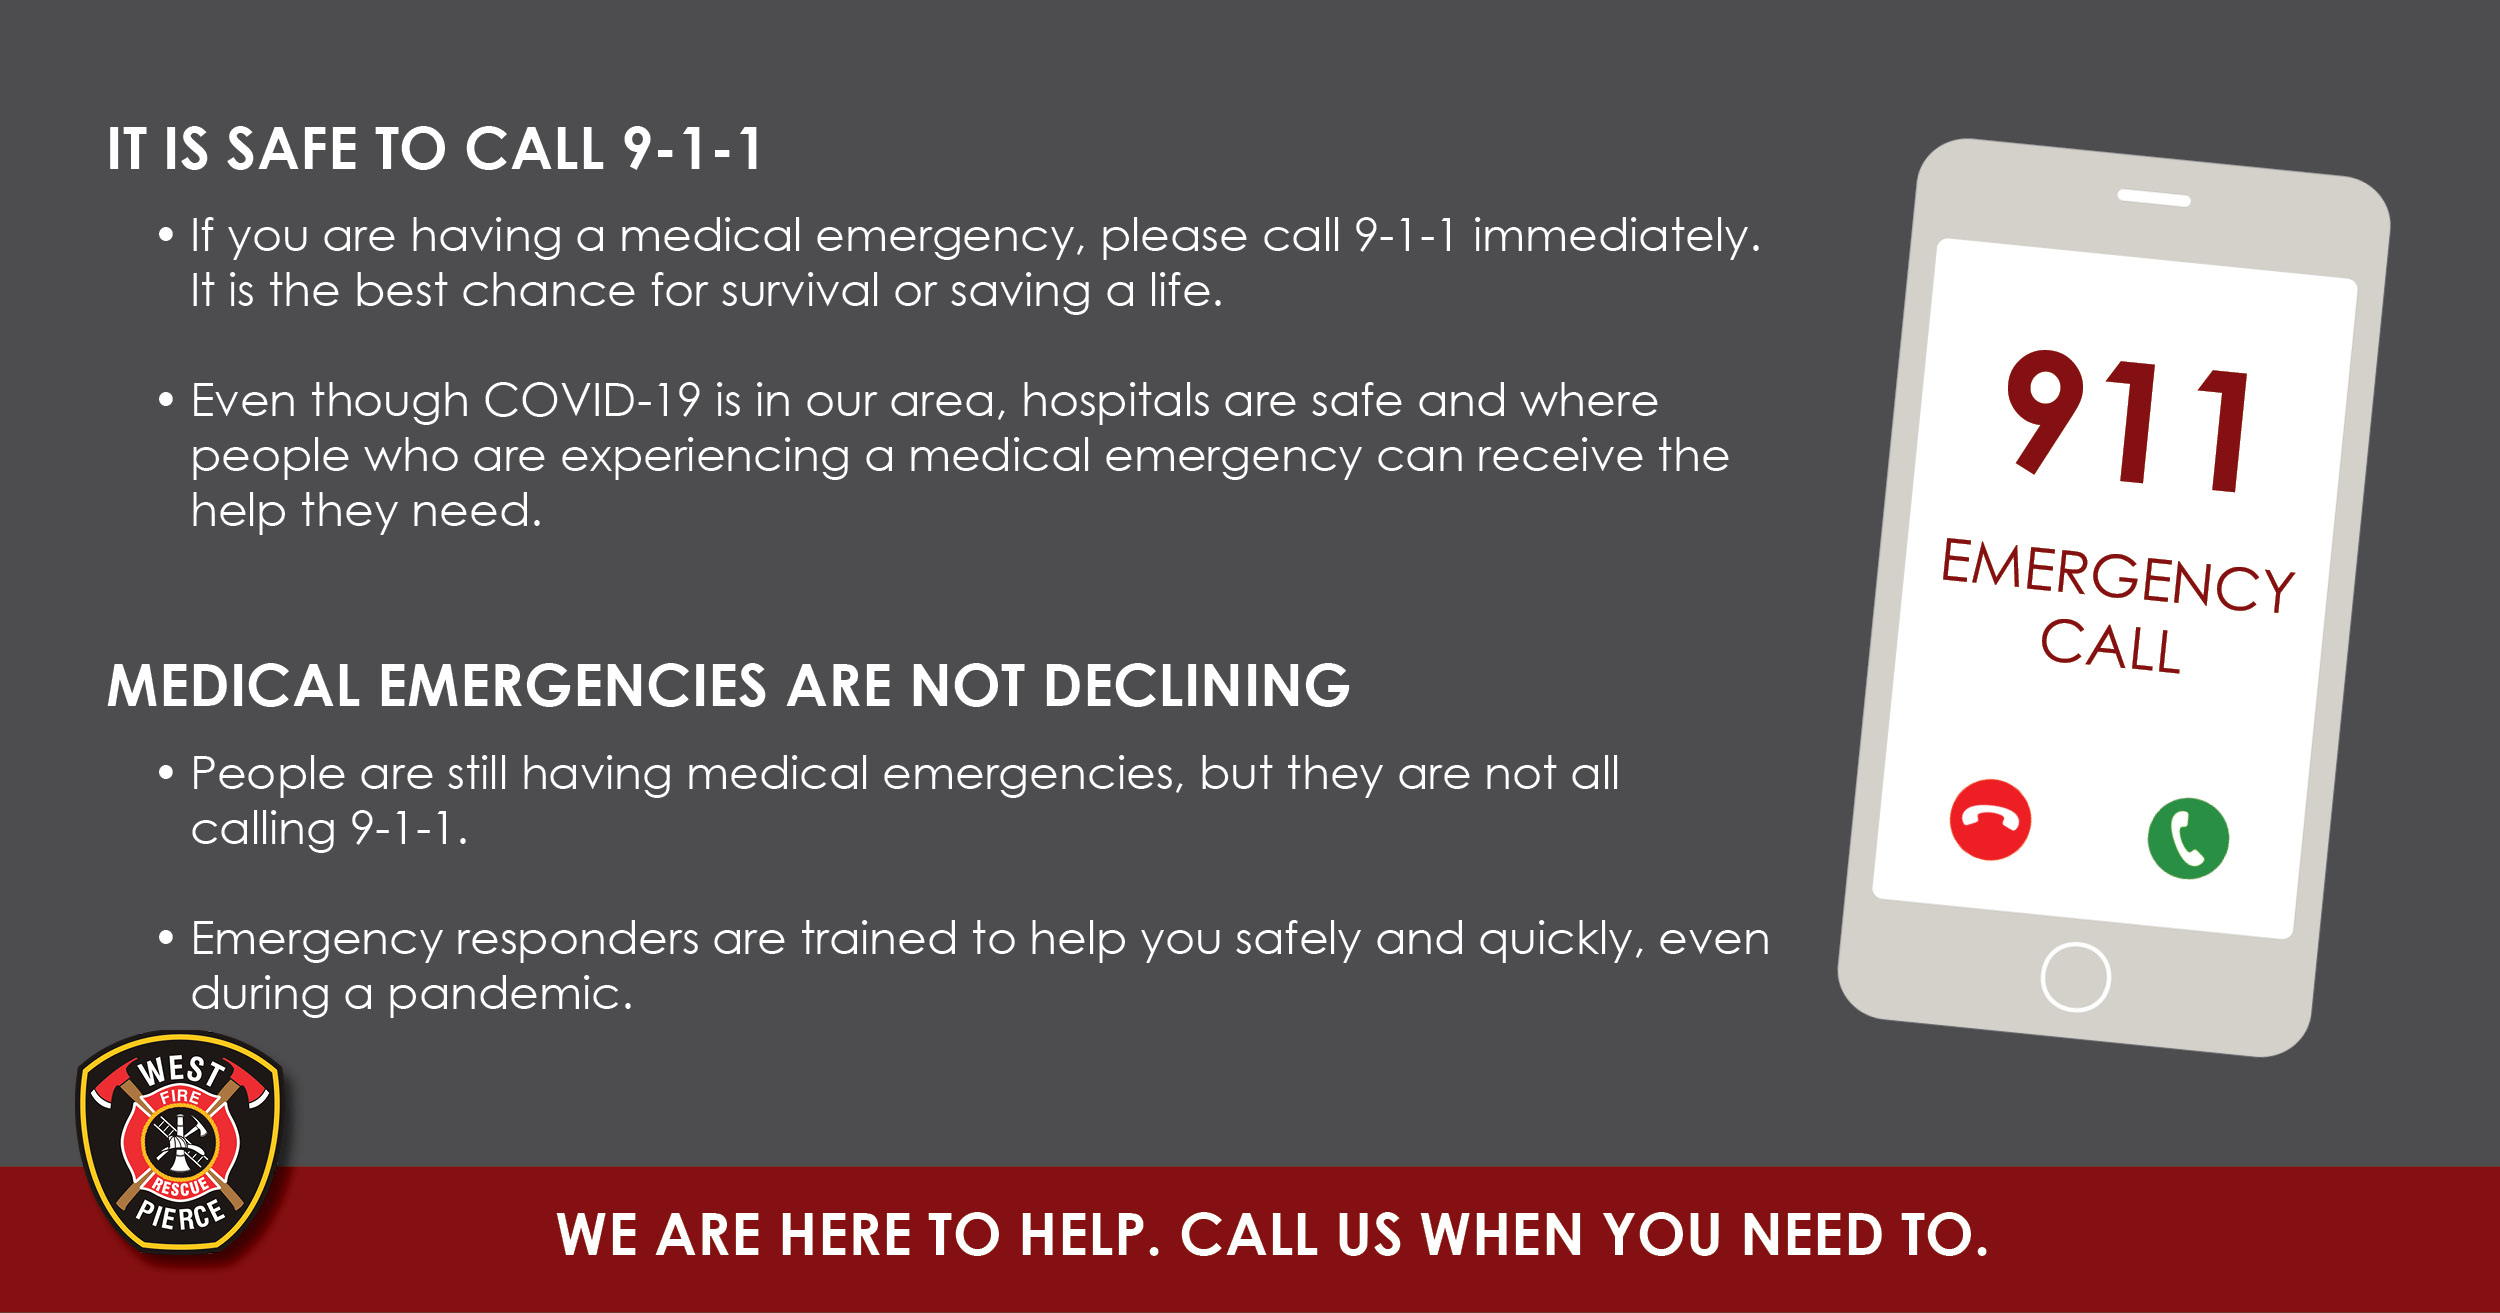 It is Safe to call 9-1-1